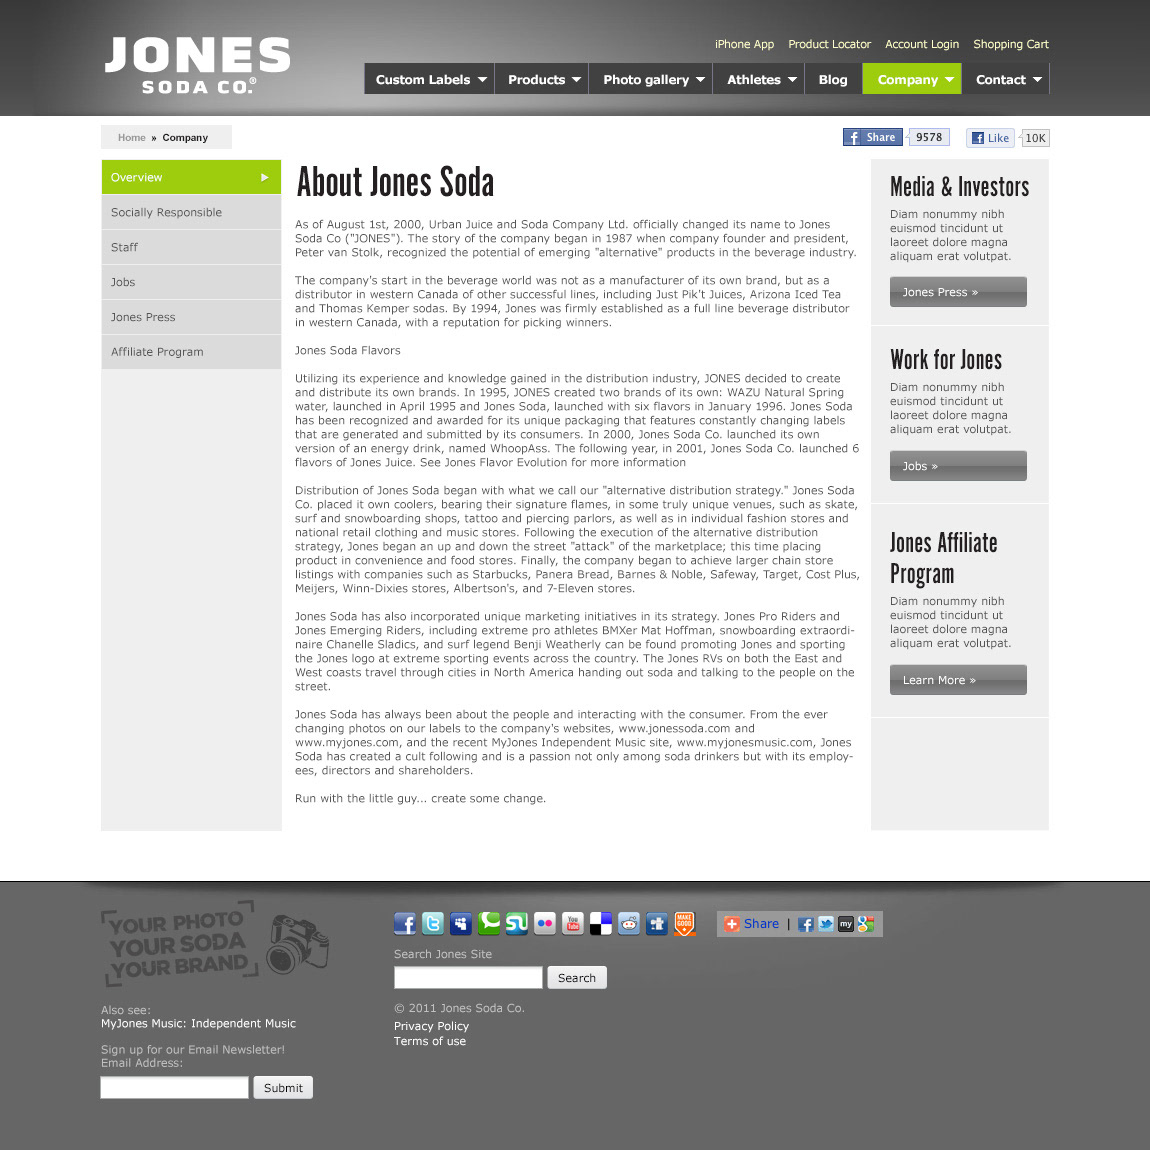 marketing strategy for jones soda distribution Posts about tesla marketing strategy written by pjda paul j d'arcy on  and both are challenging traditional sales models with their own direct distribution system.